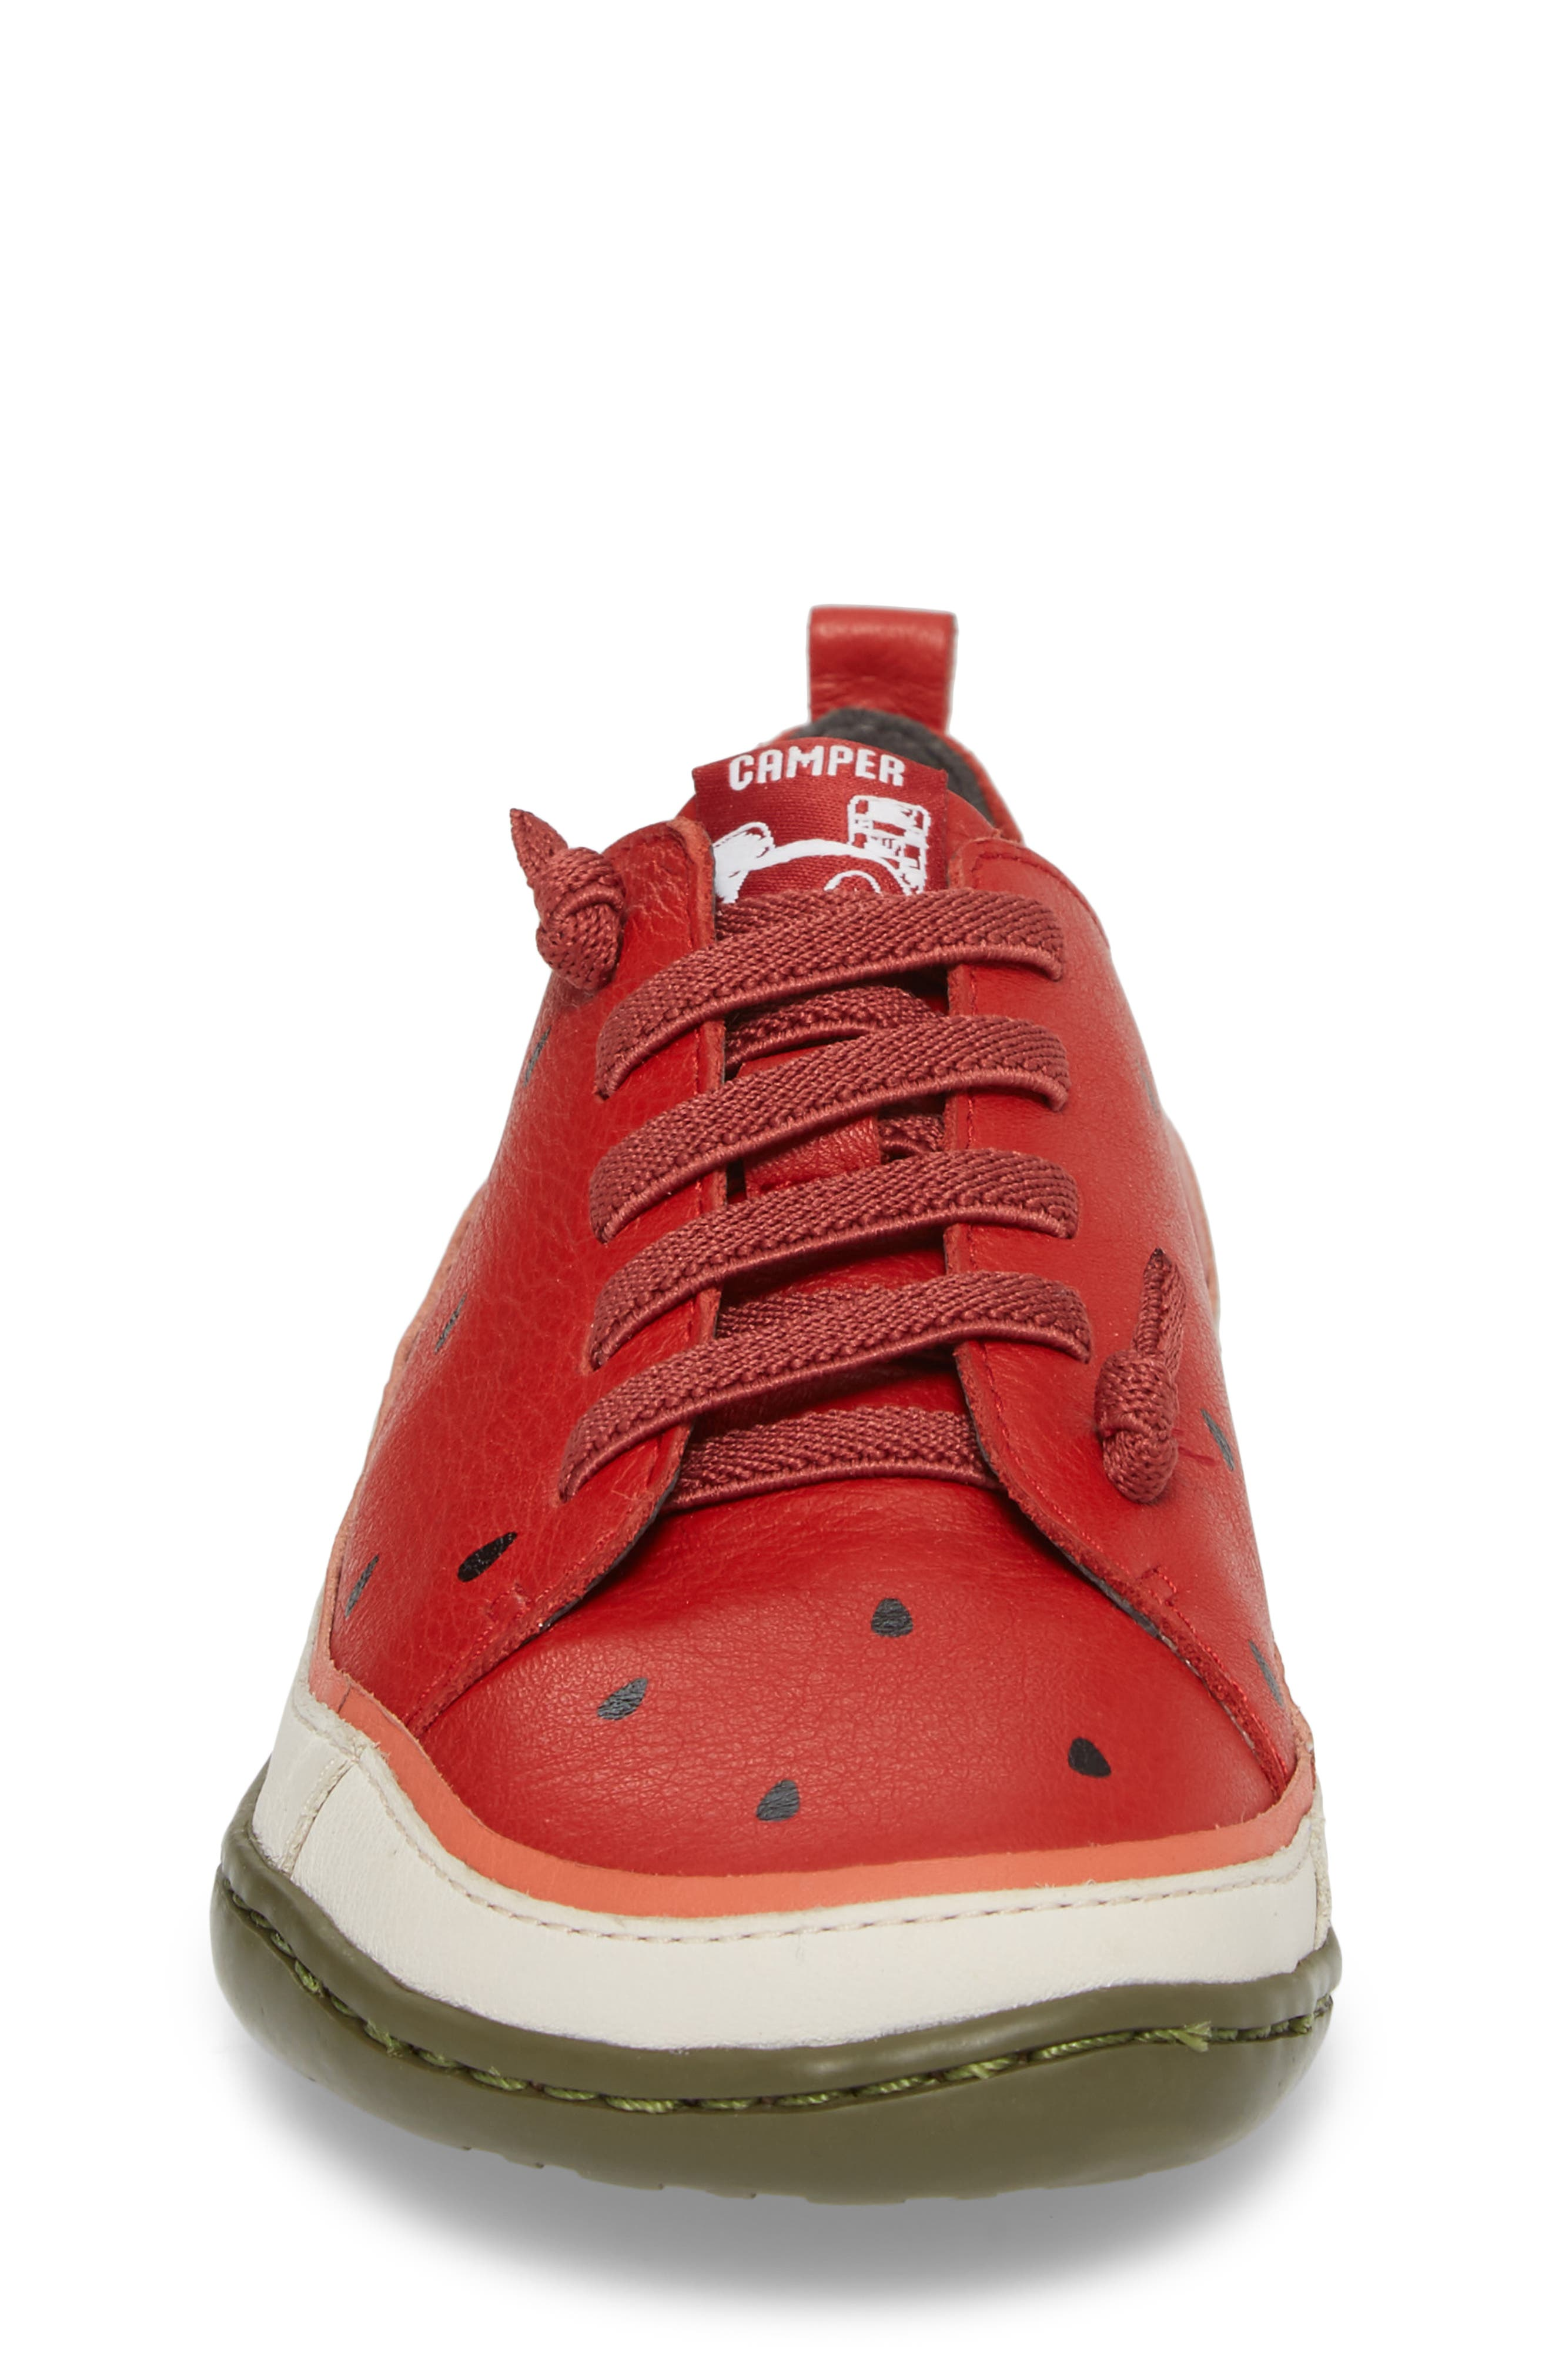 Twins Watermelon Sneaker,                             Alternate thumbnail 4, color,                             600